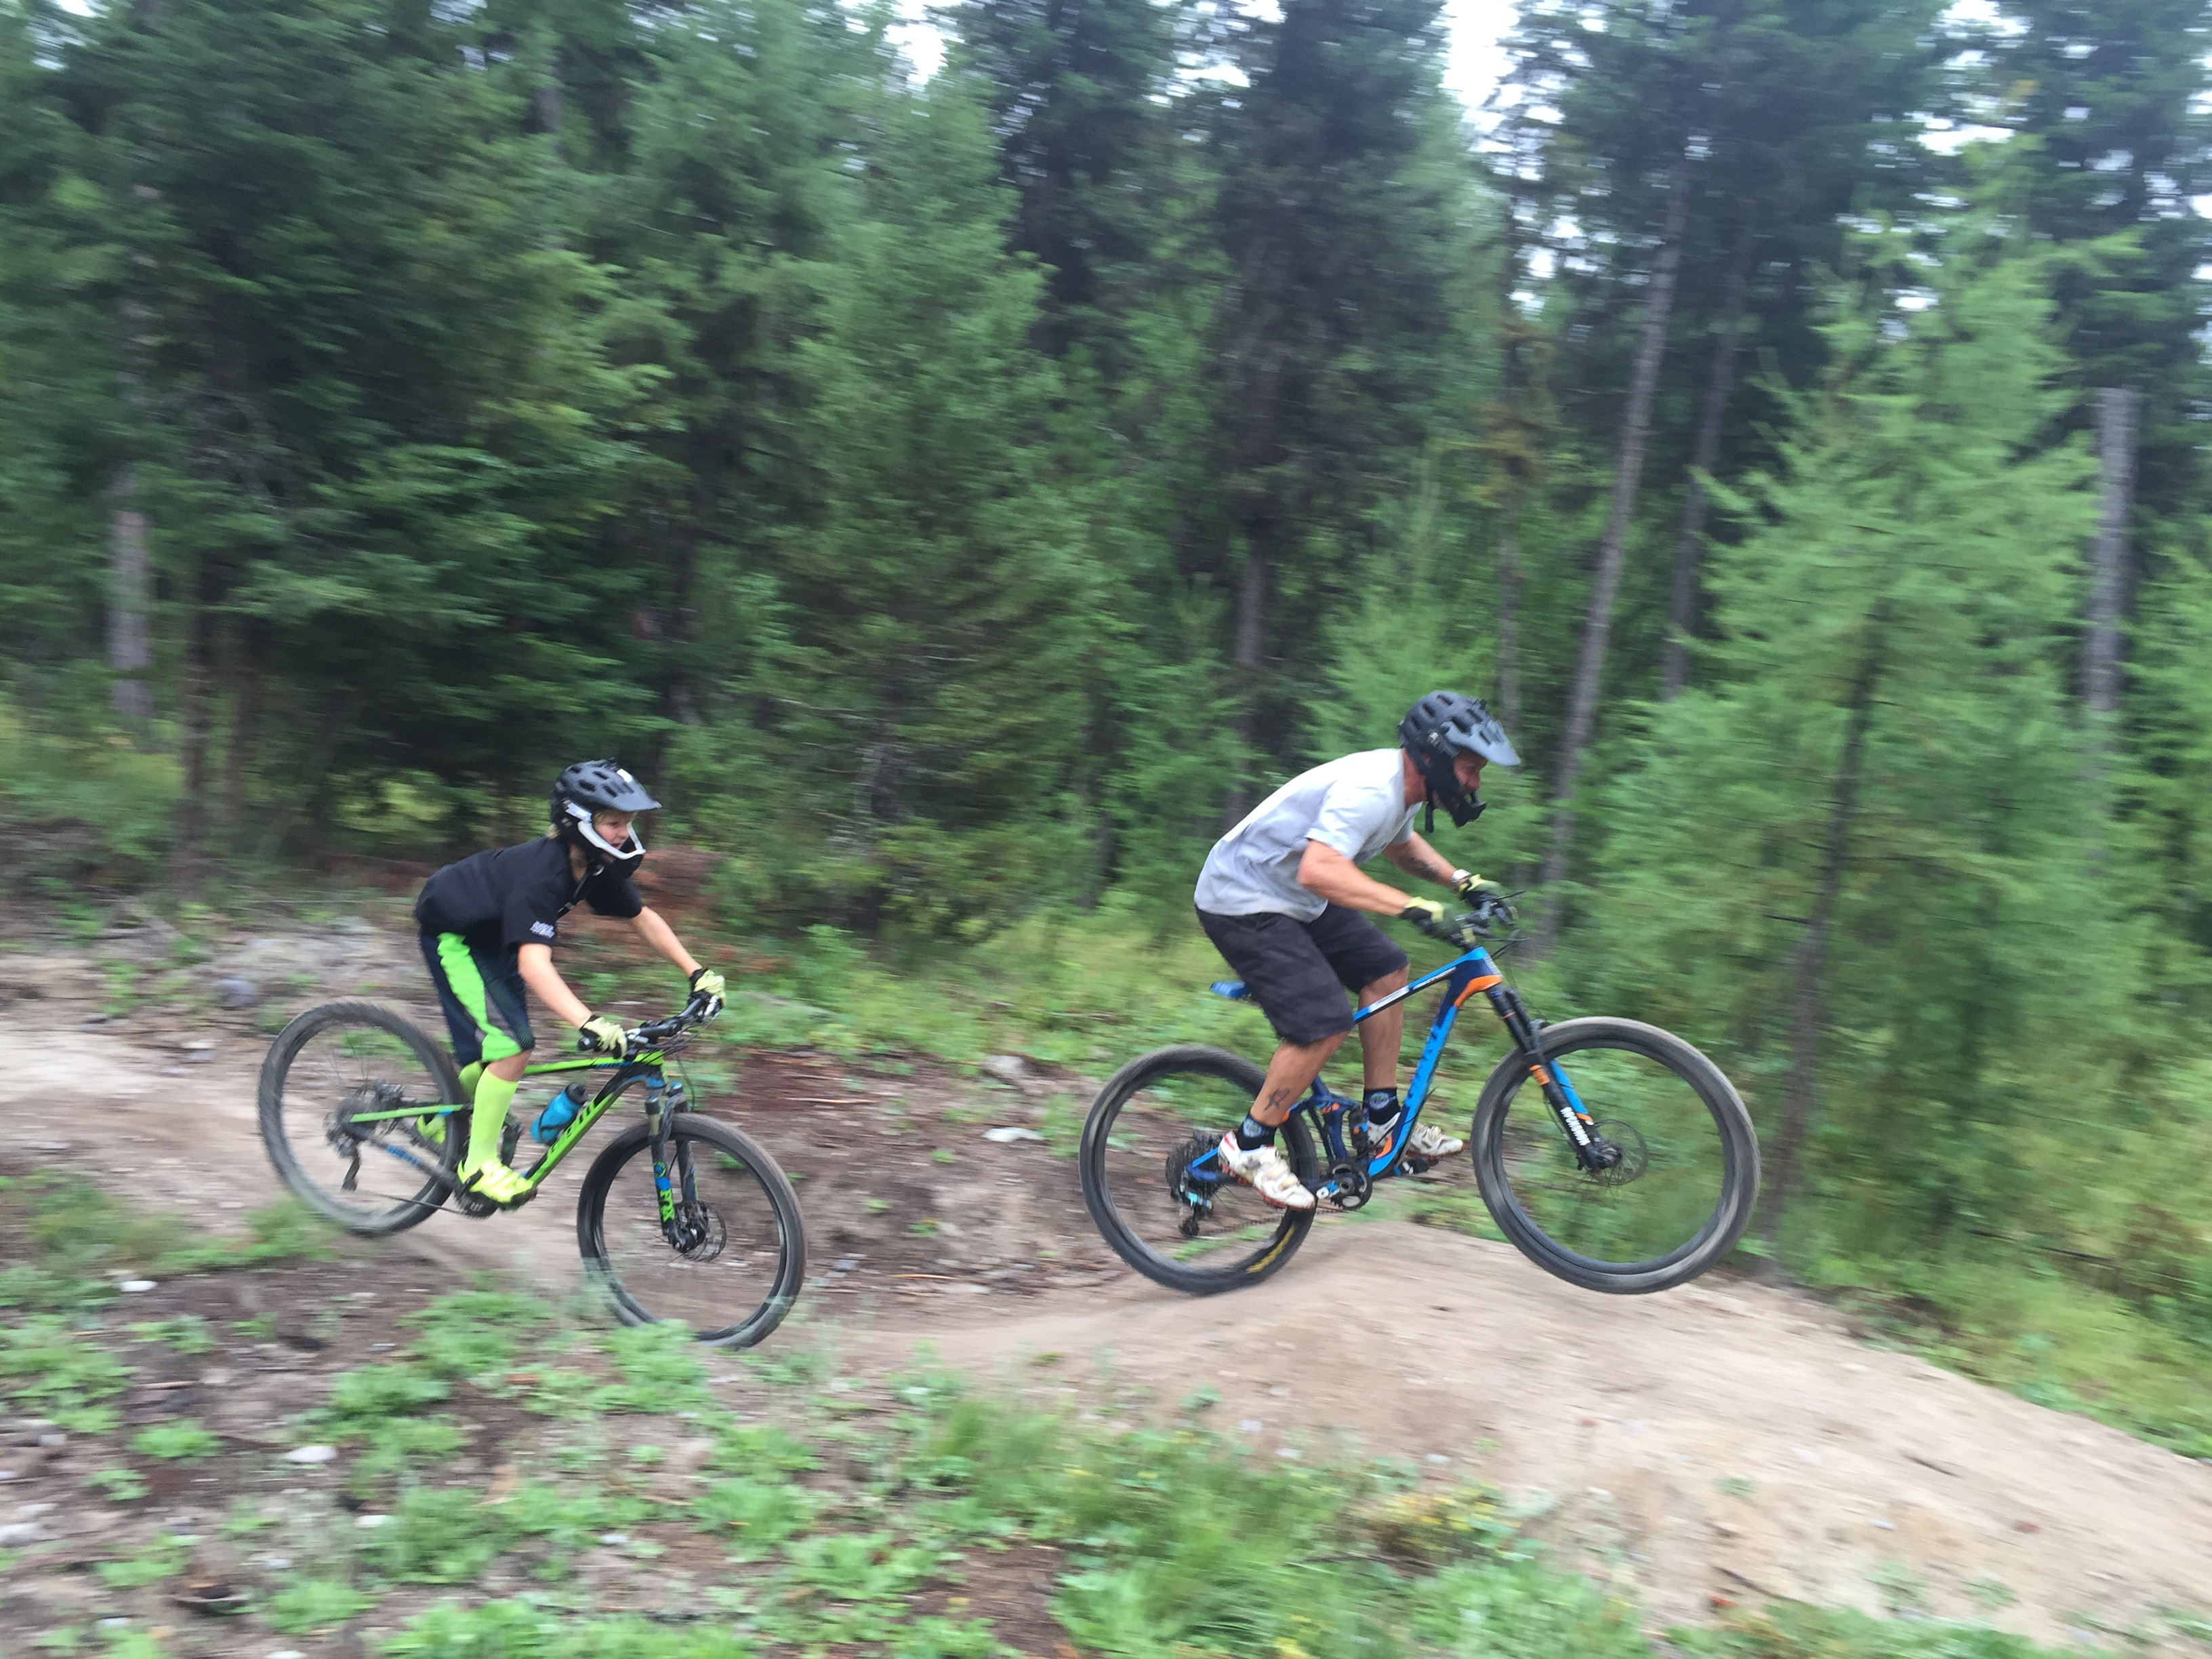 Randy and Kalden taking on the jump line.